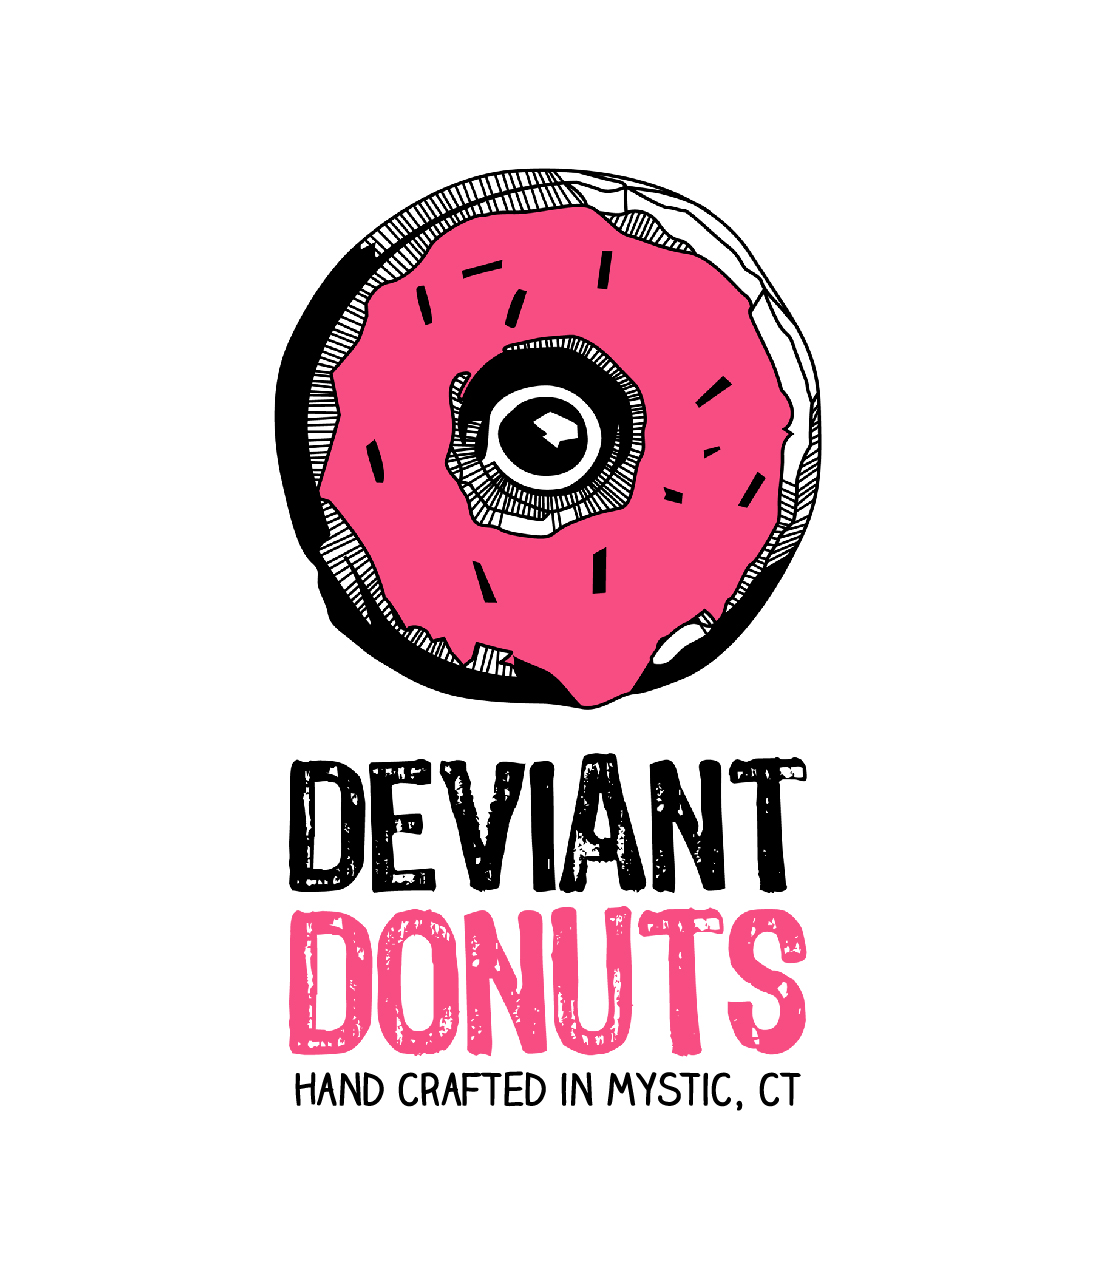 donuts - Hand crafted donuts made fresh every Friday, Saturday and Sunday. Get them while you can... we go until sold out!